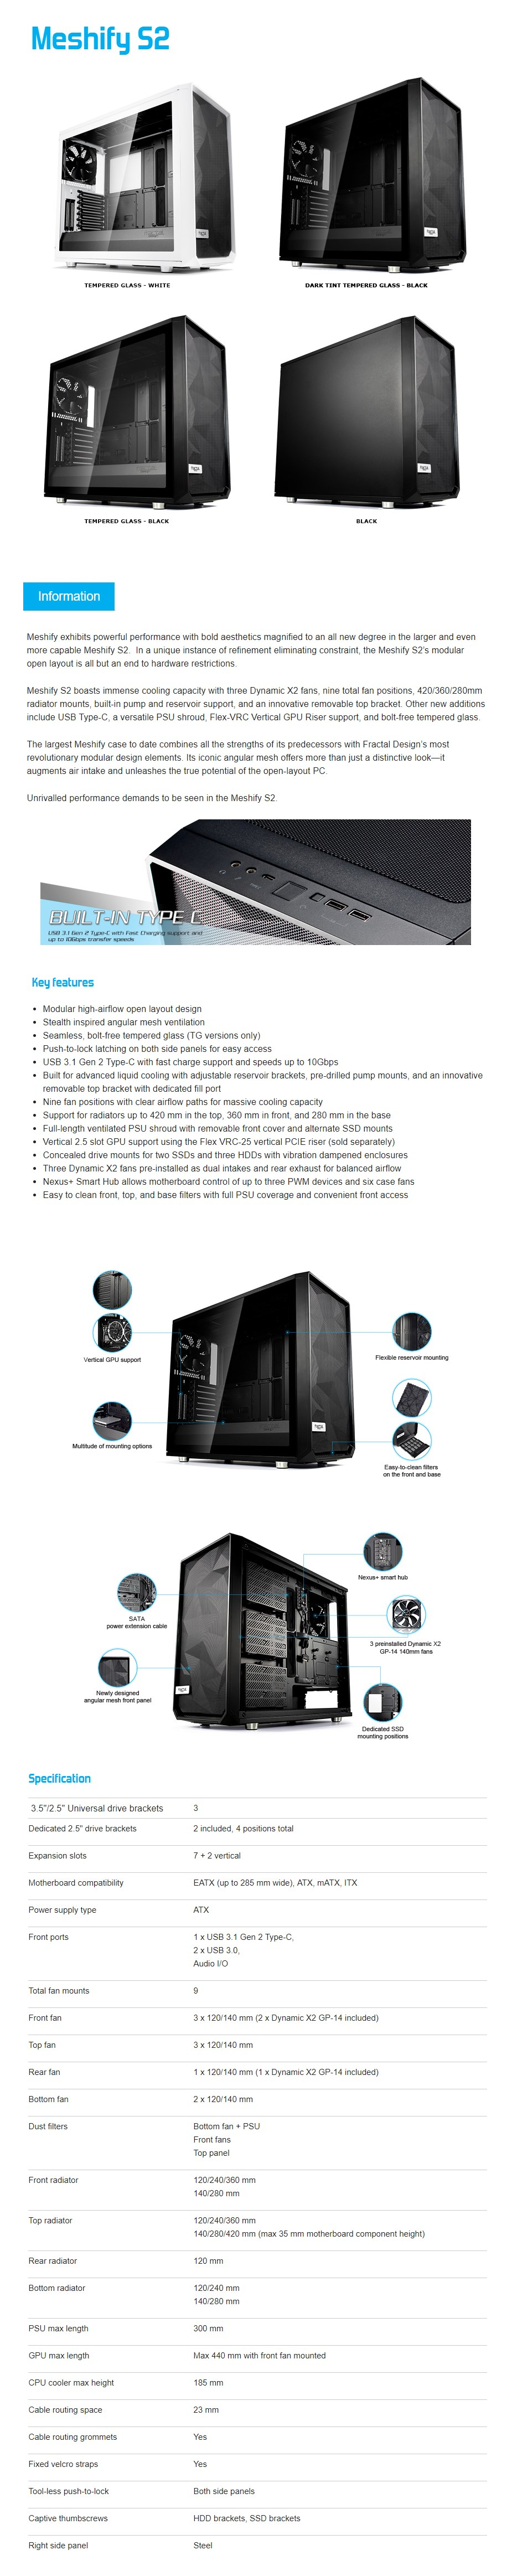 Fractal Design Meshify S2 Tempered Glass USB-C Mid-Tower E-ATX Case - Black - Desktop Overview 1